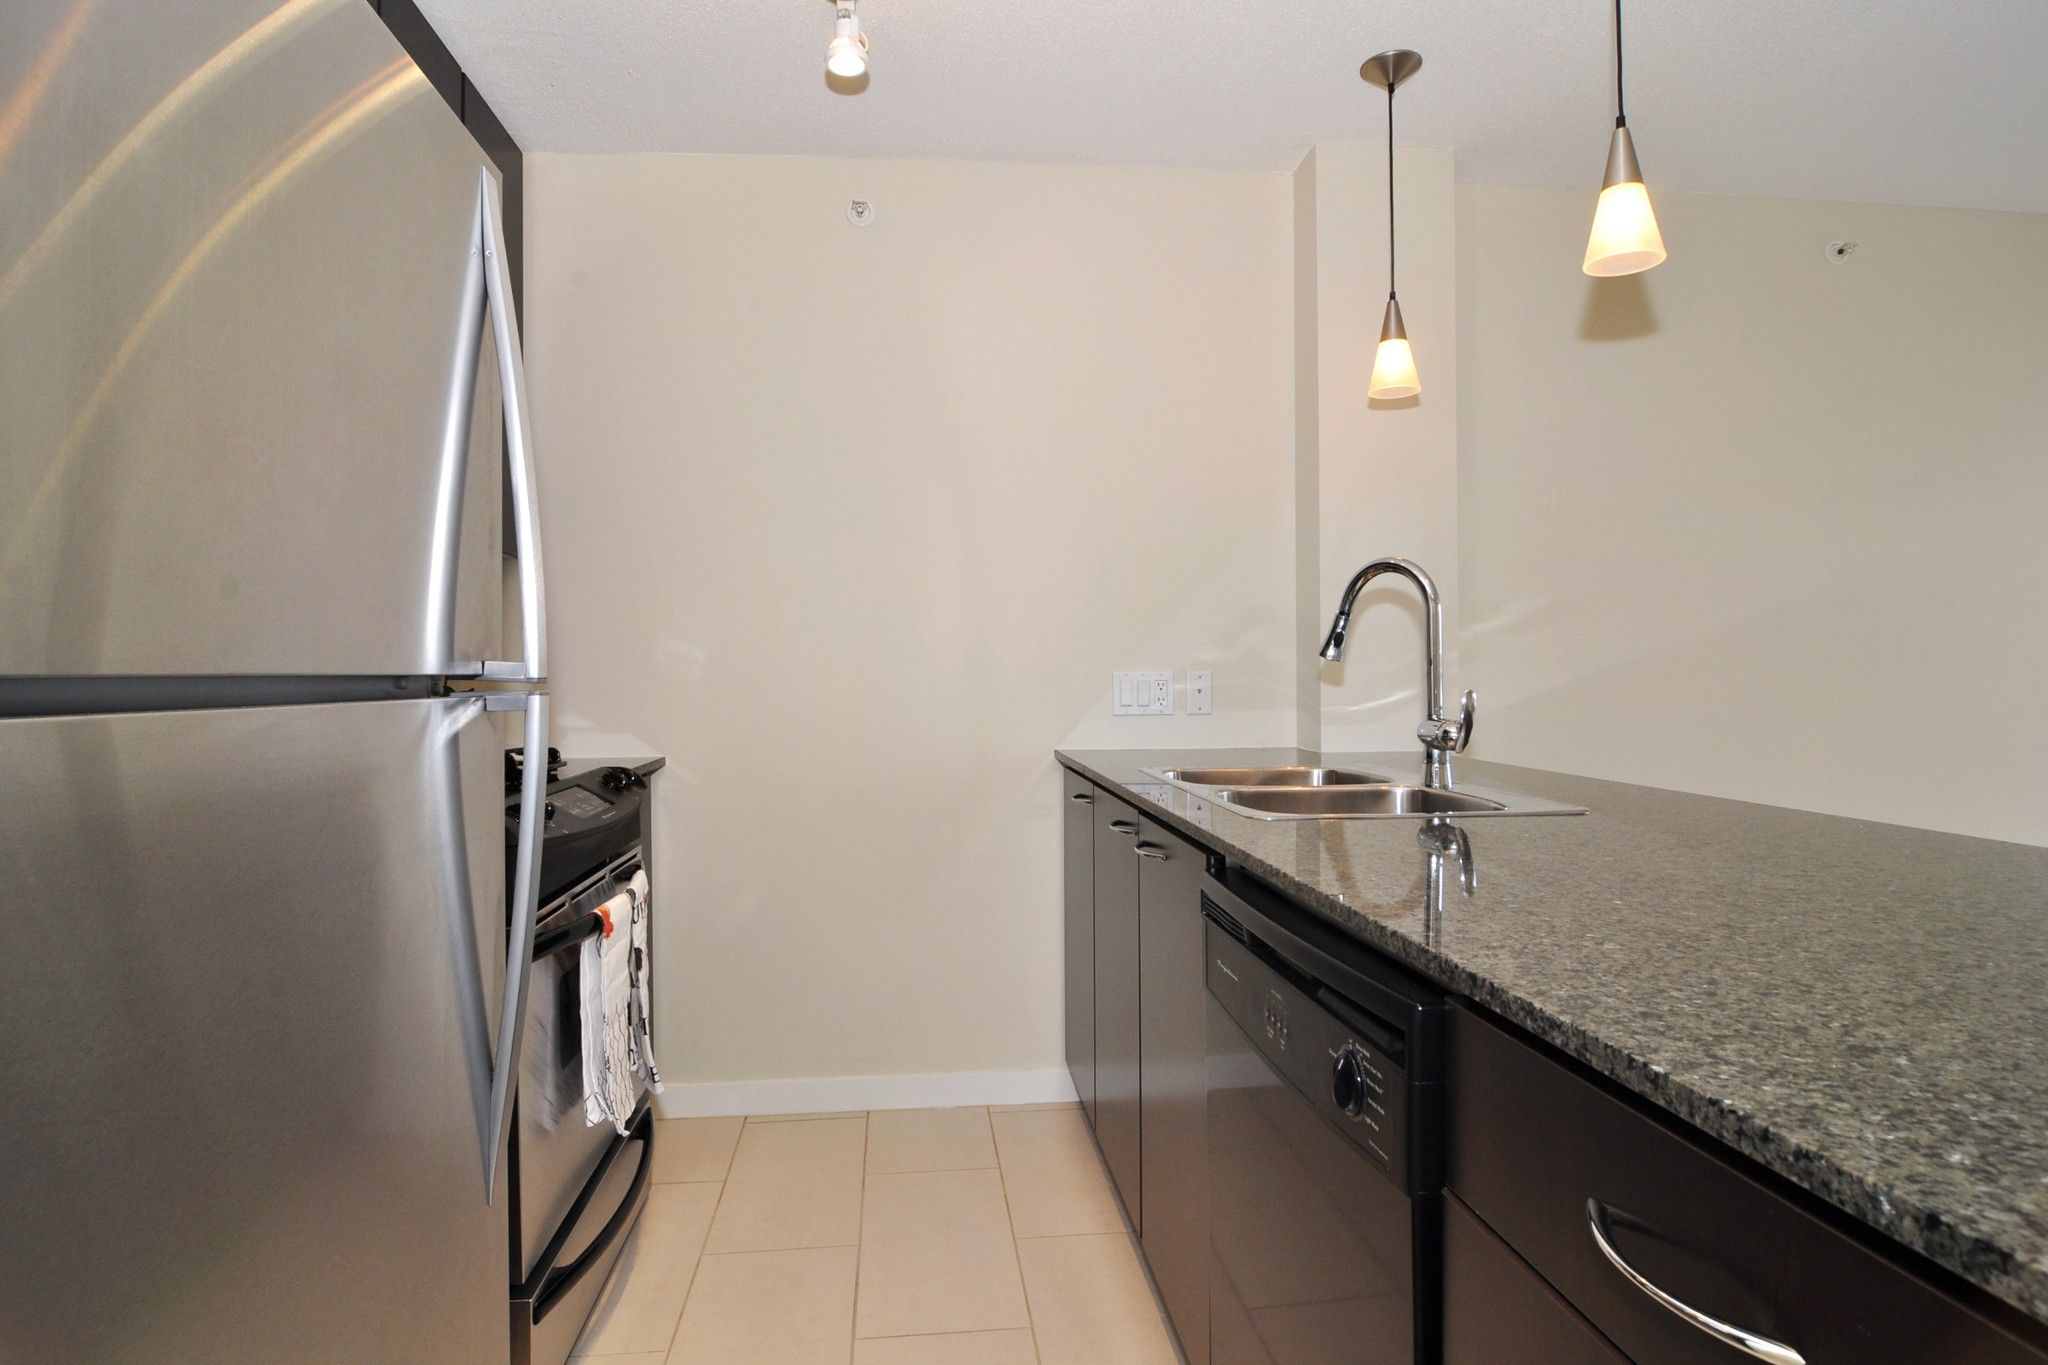 """Photo 6: Photos: 312 7138 COLLIER Street in Burnaby: Highgate Condo for sale in """"STANDFORD HOUSE"""" (Burnaby South)  : MLS®# R2224760"""